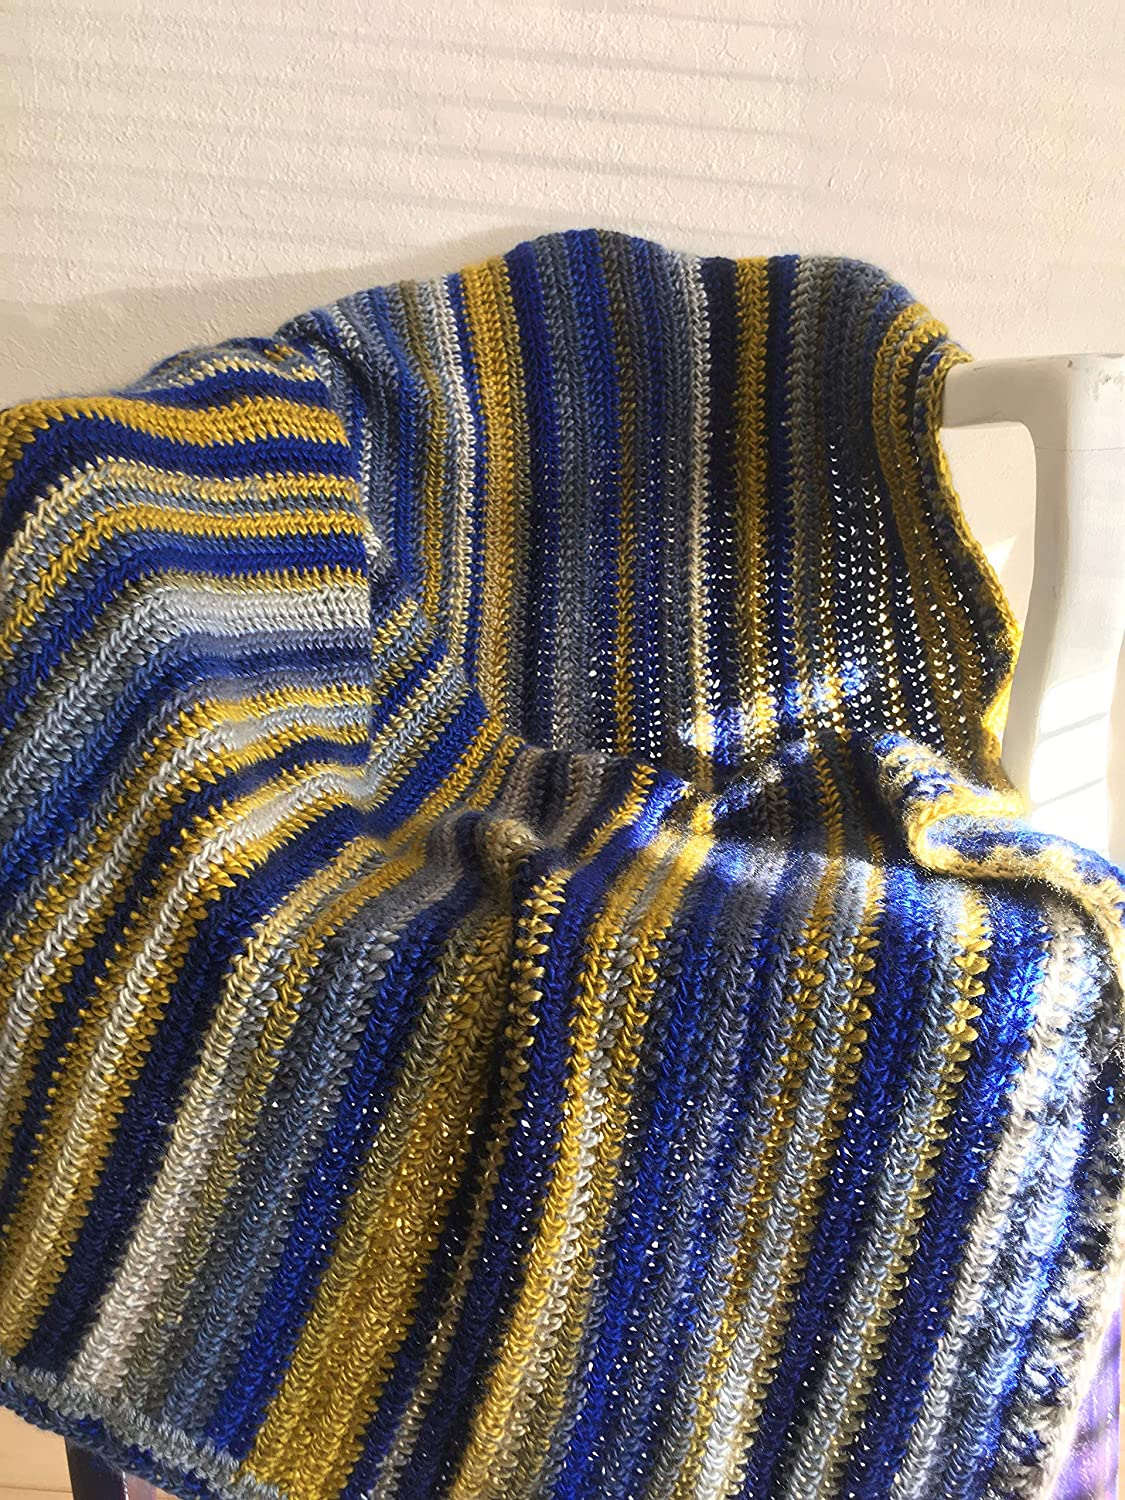 Amazon com: Crochet blanket handmade afghan throw in blue, gold and